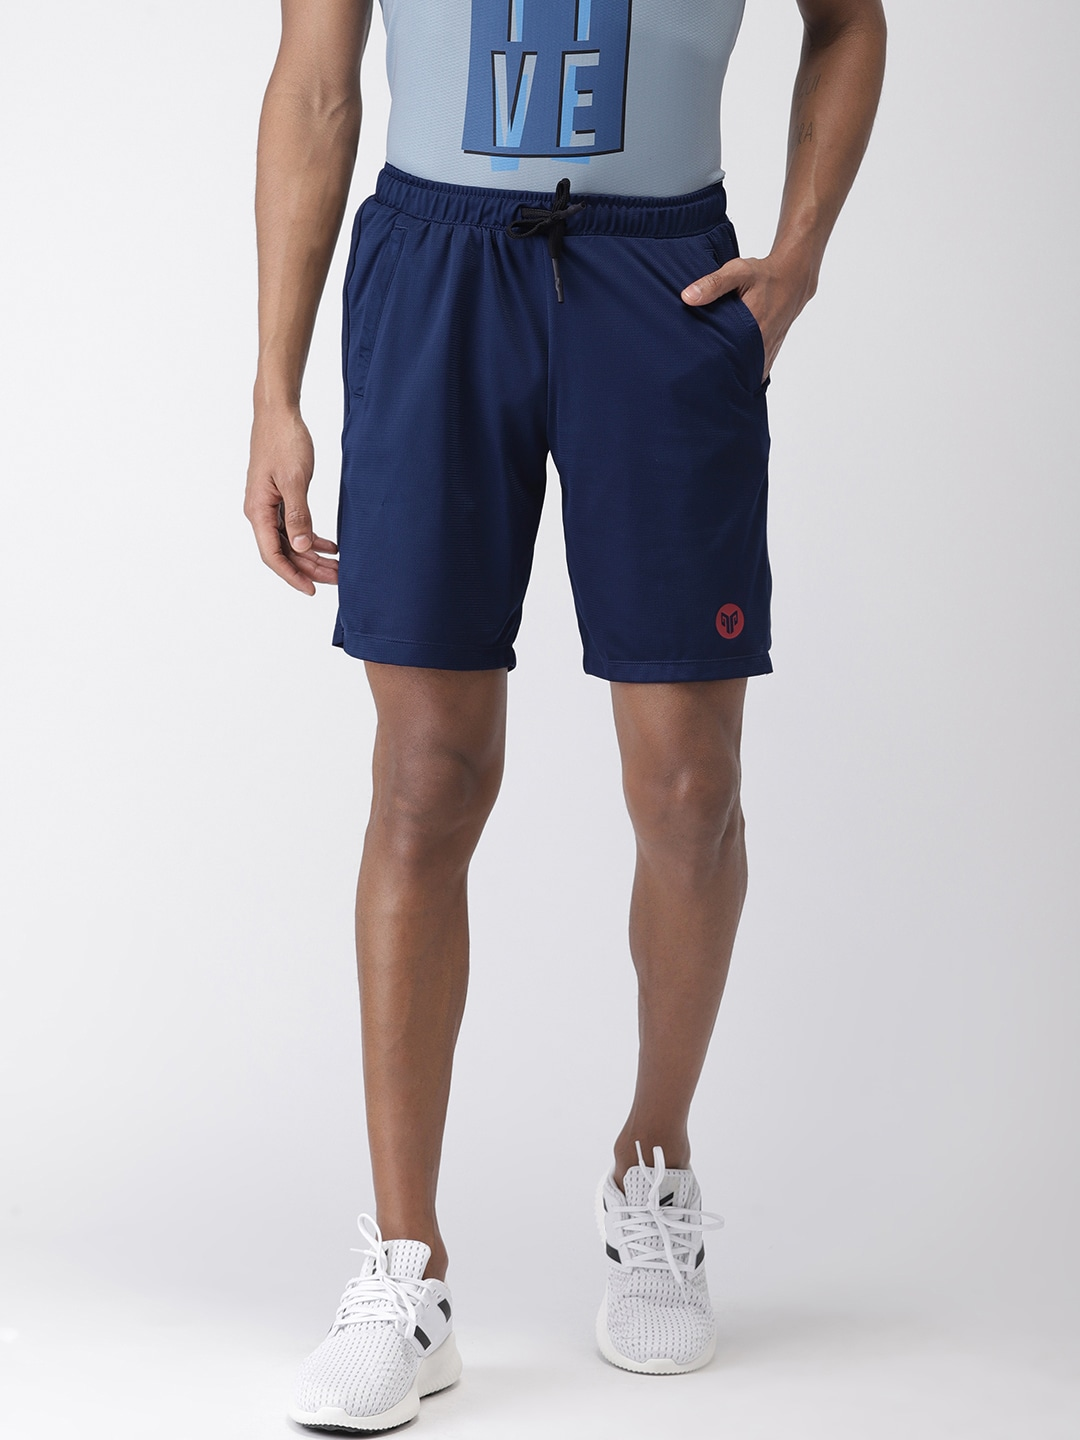 online store 54f48 d62fc Sports Shorts - Buy Sports Shorts For Women   Men Online   Myntra